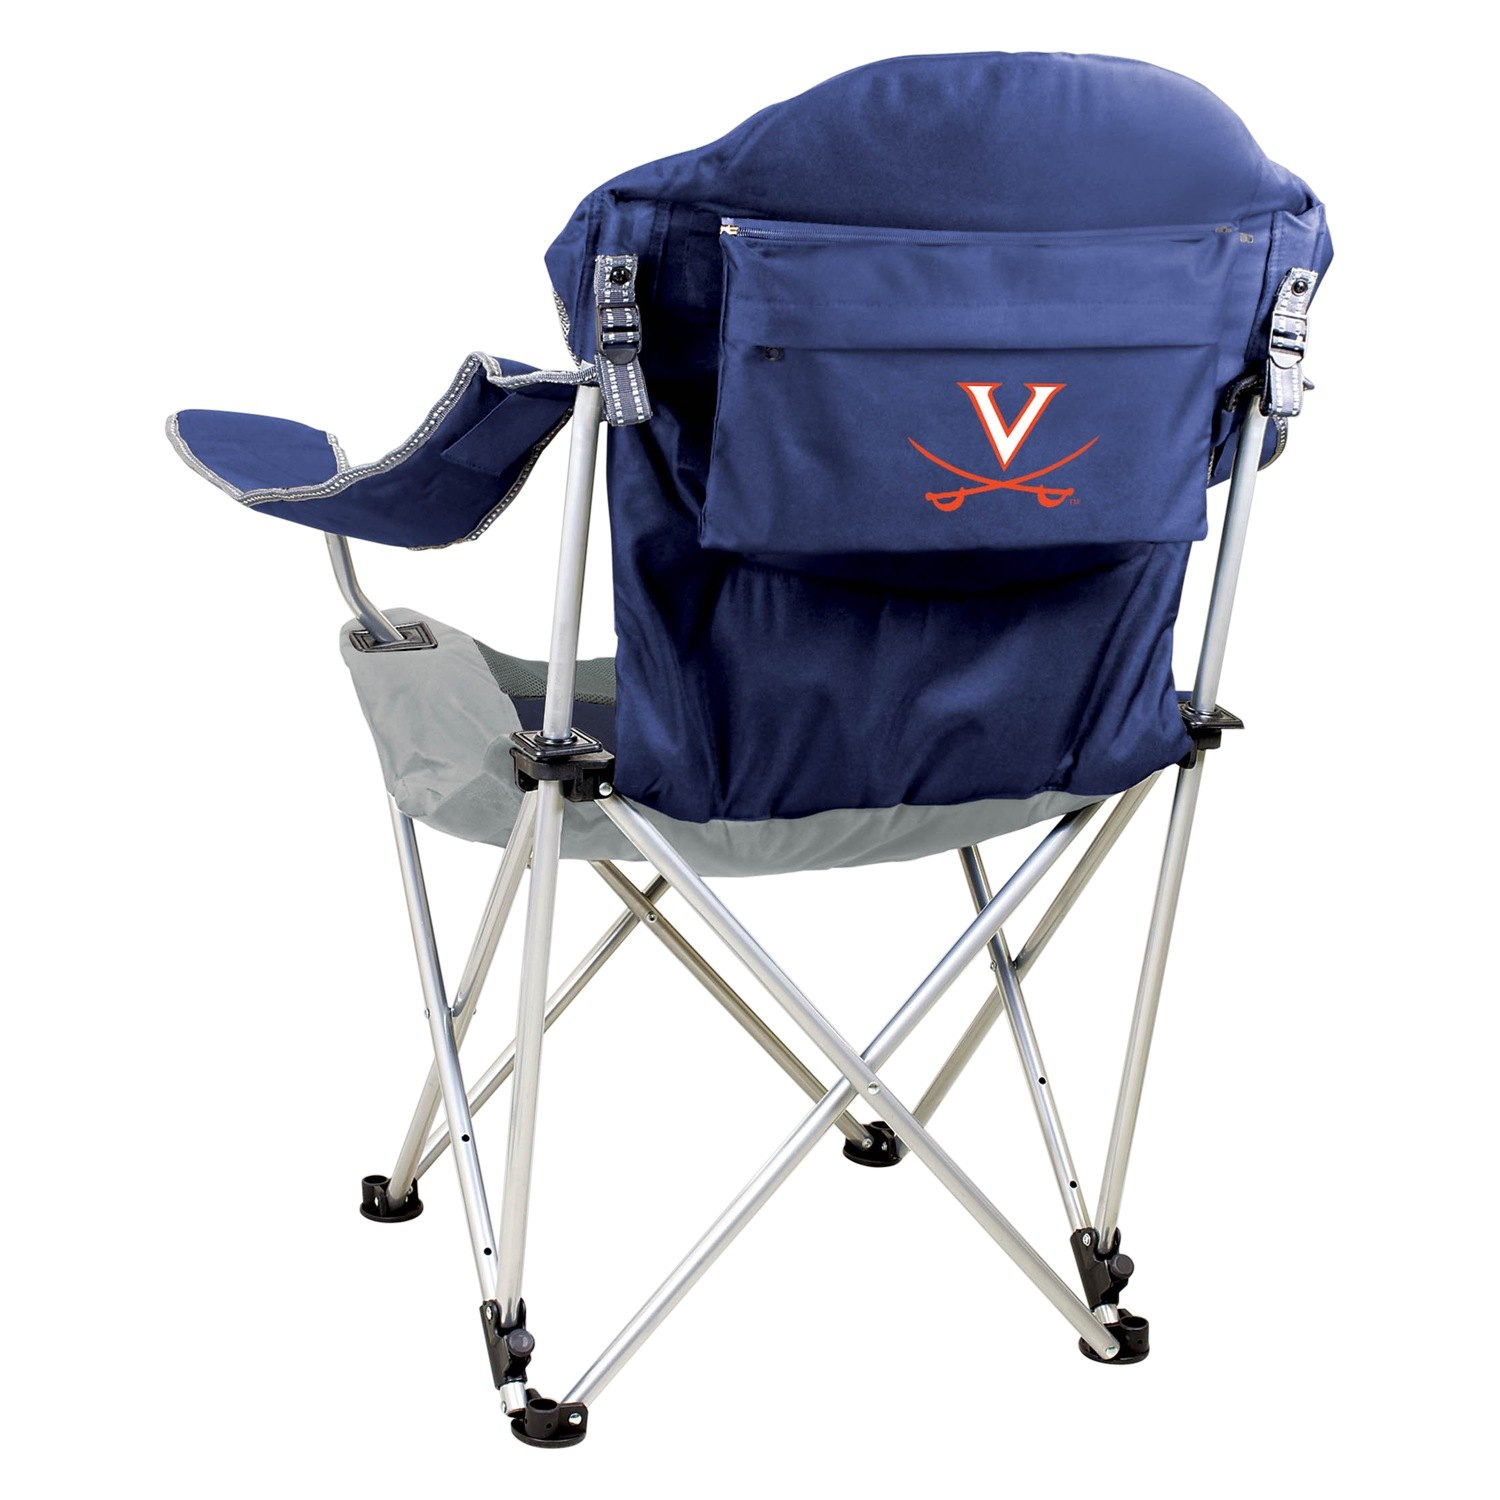 fishing chair add ons client office chairs picnic time® 803-00-138-594-0 - reclining virginia cavaliers navy camp recreationid.com